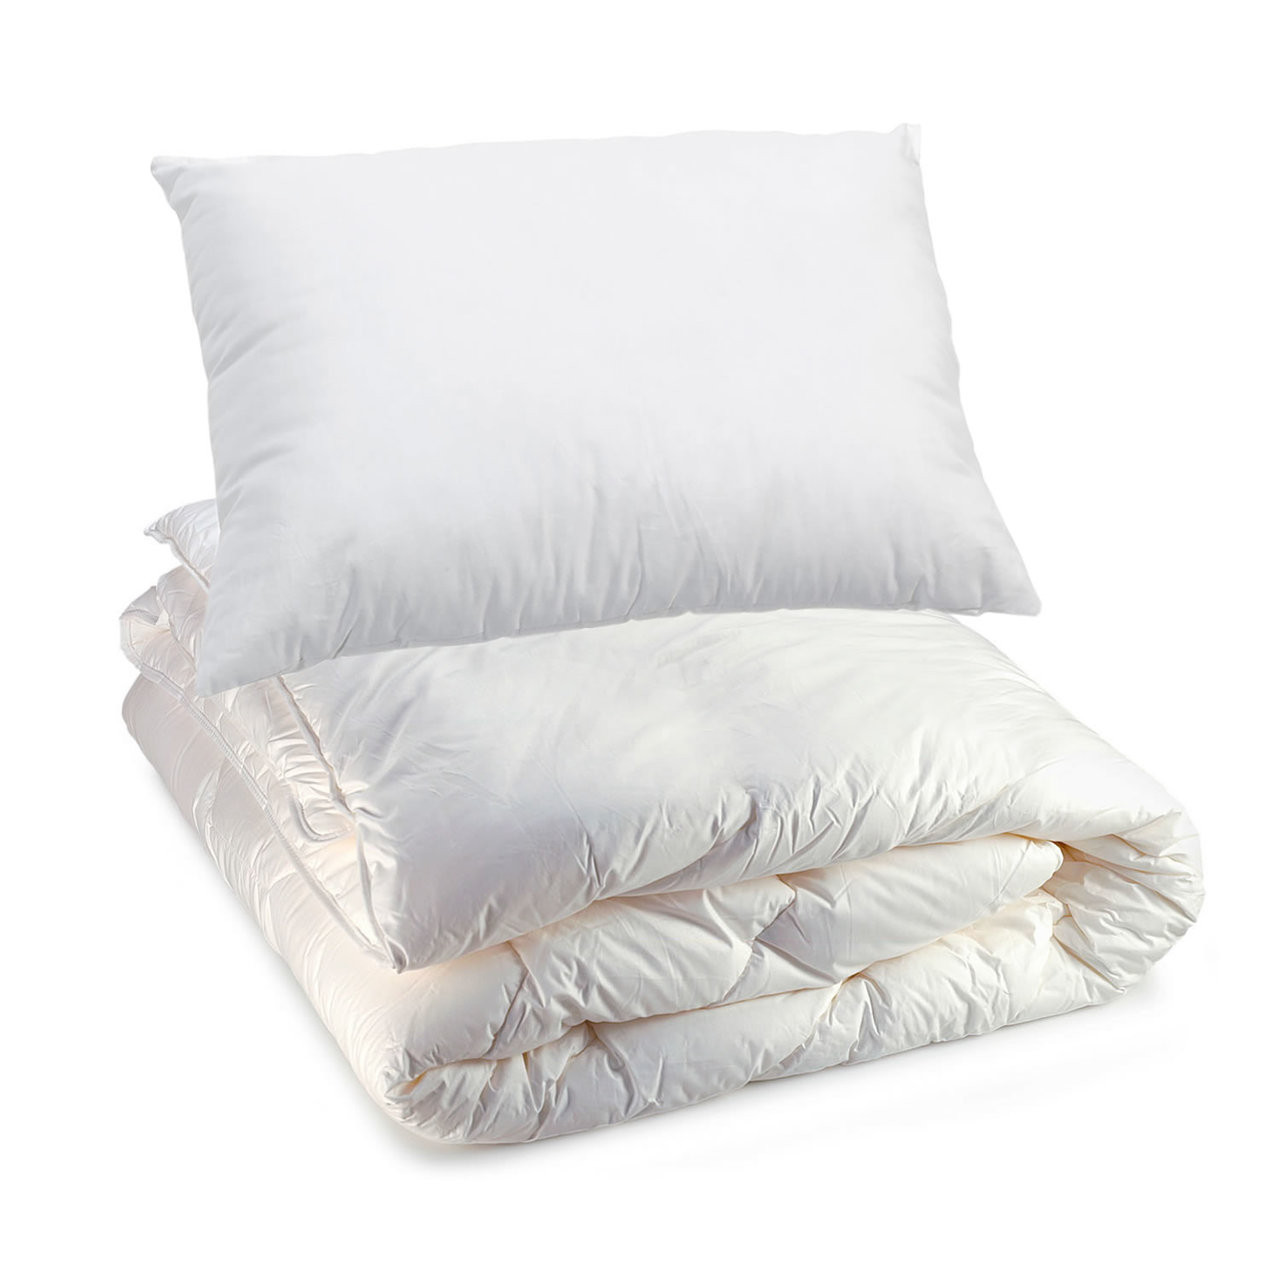 Polyester Poly-cotton Cover Cot Bed mTextile Summer Season Duvet Quilt 7.5 Tog Non Allergenic Hollowfibre